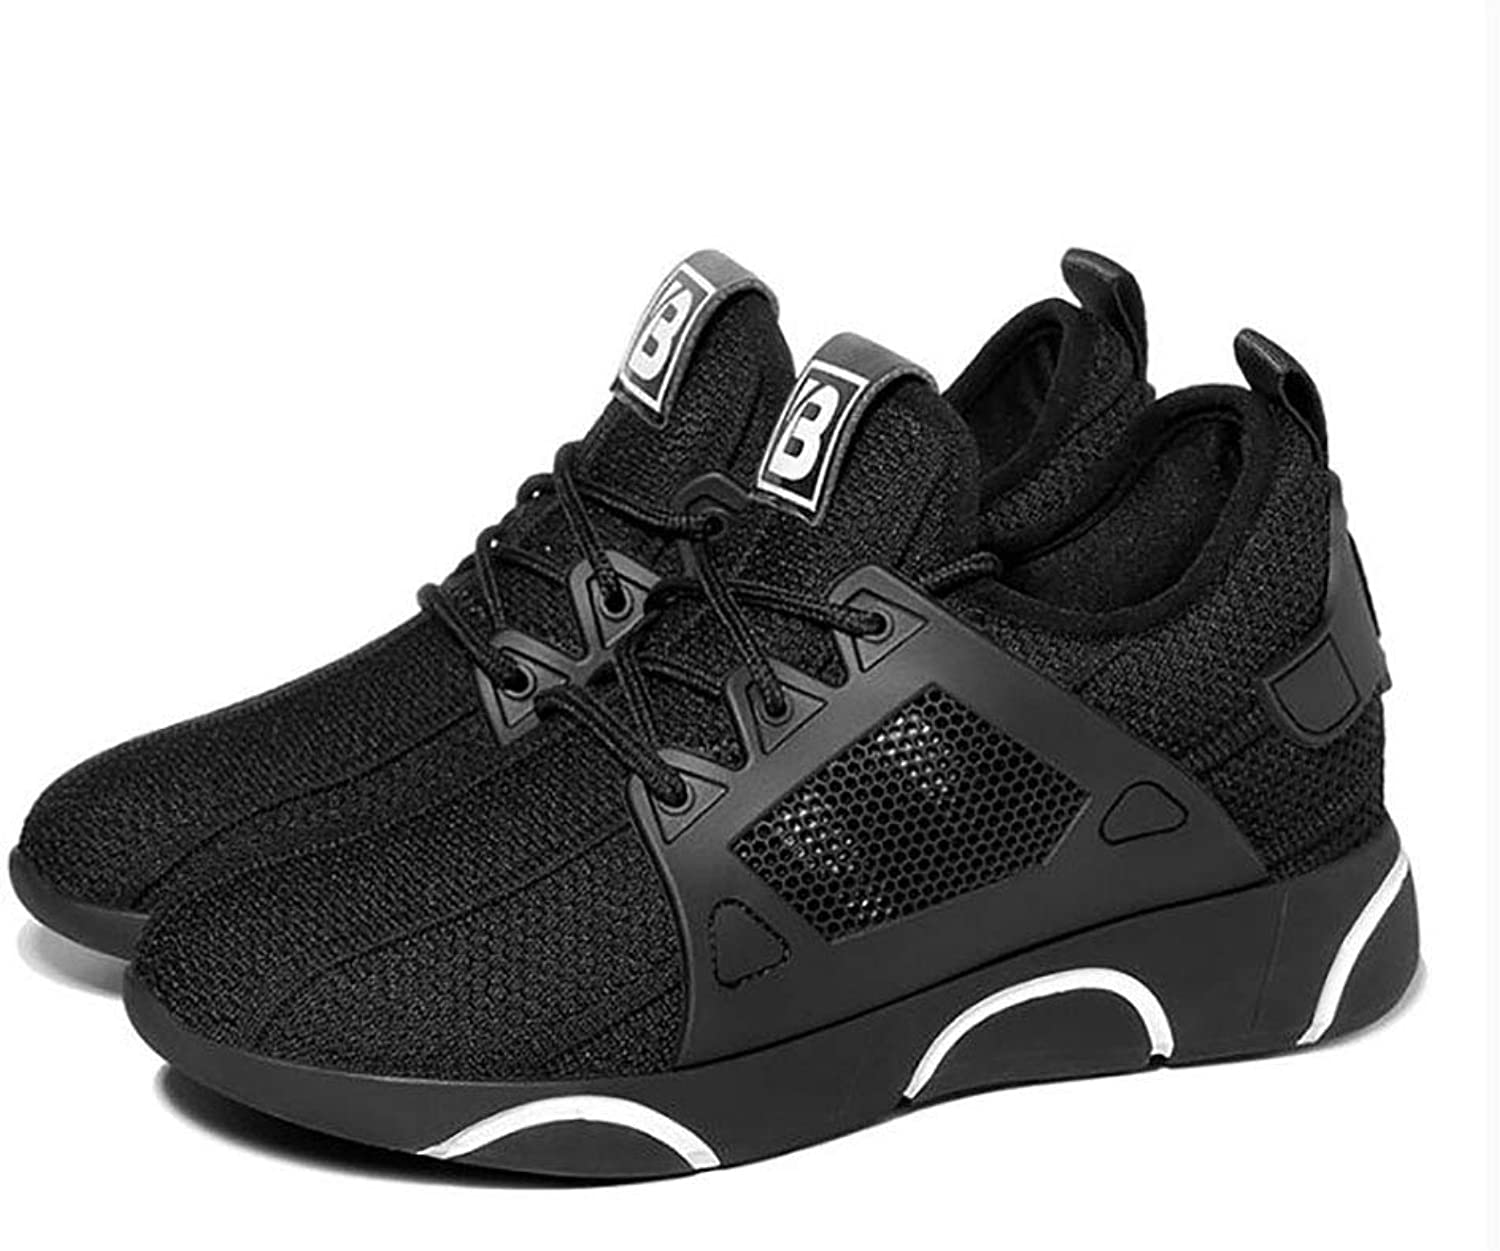 Sneakers, Women's shoes, Autumn Korean Version Breathable Casual shoes, Running shoes, Fitness shoes (color   B, Size   40)